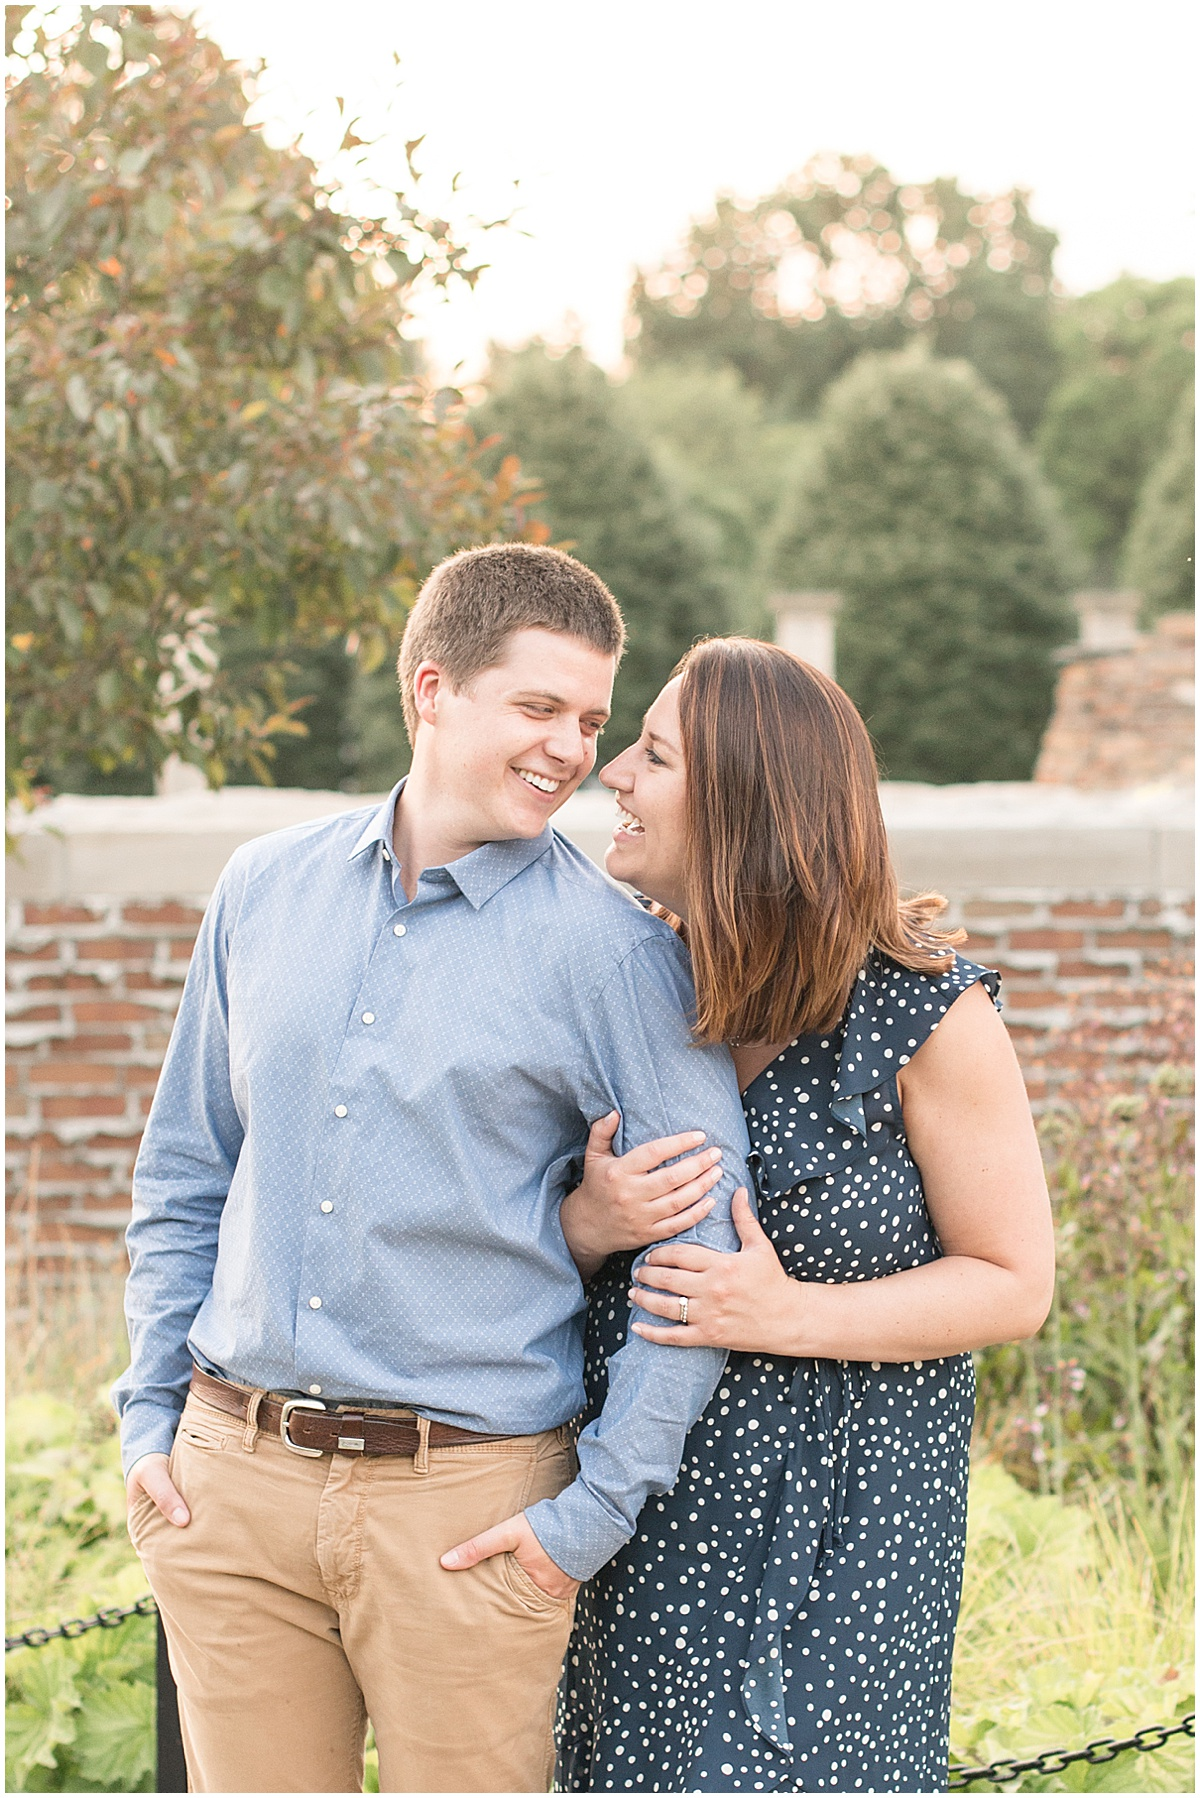 Anniversary photos at Holliday Park in Indianapolis